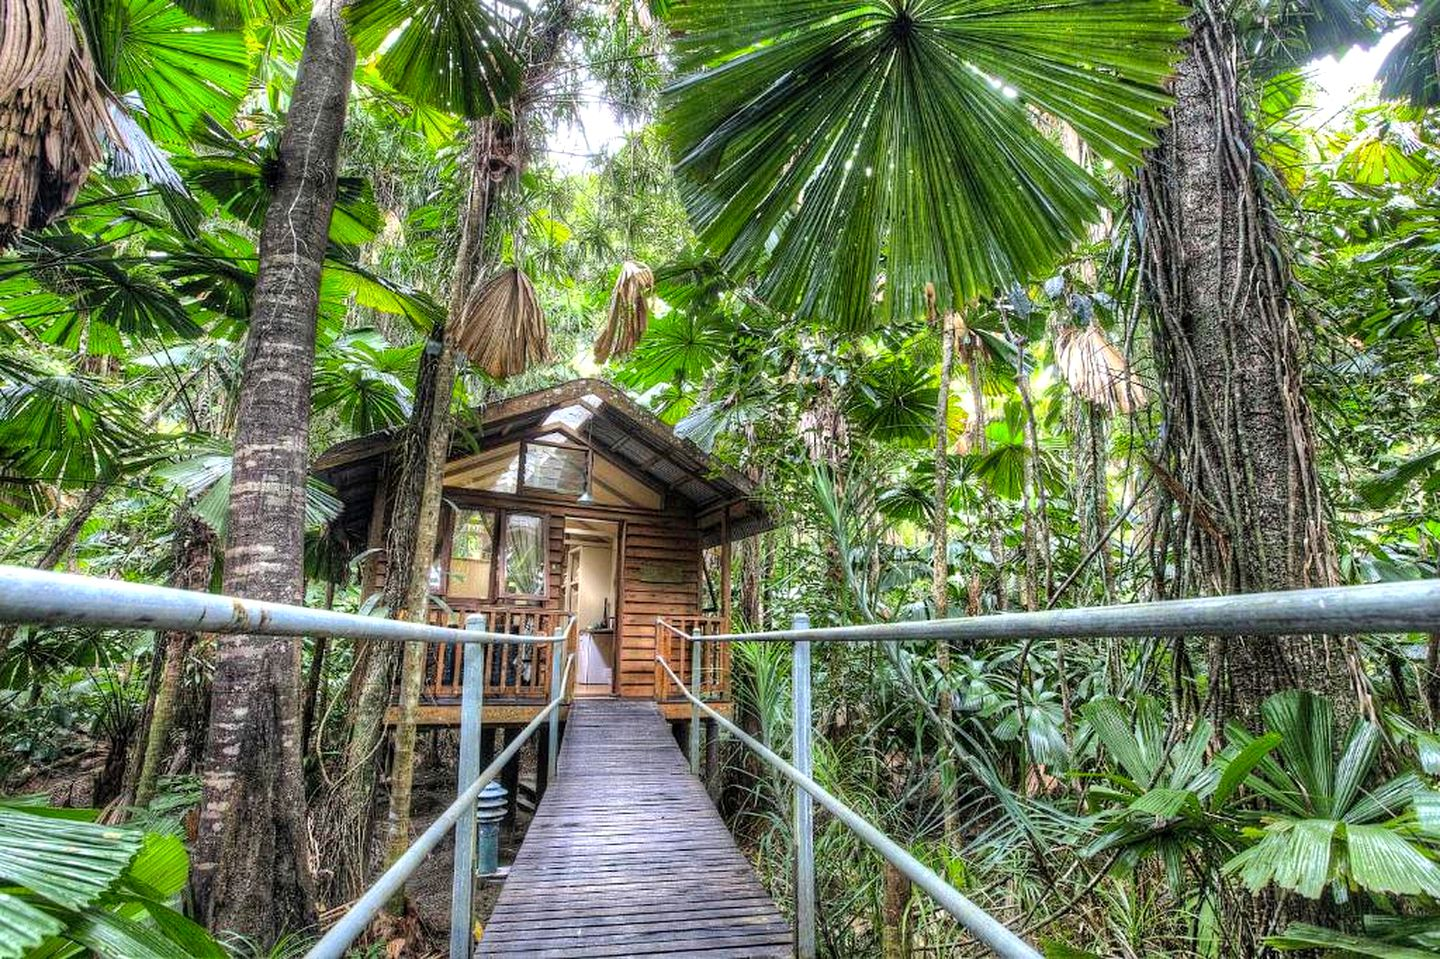 This Daintree accommodation is the ideal romantic getaway in Queensland. Holiday homes don't get any closer to nature than this!